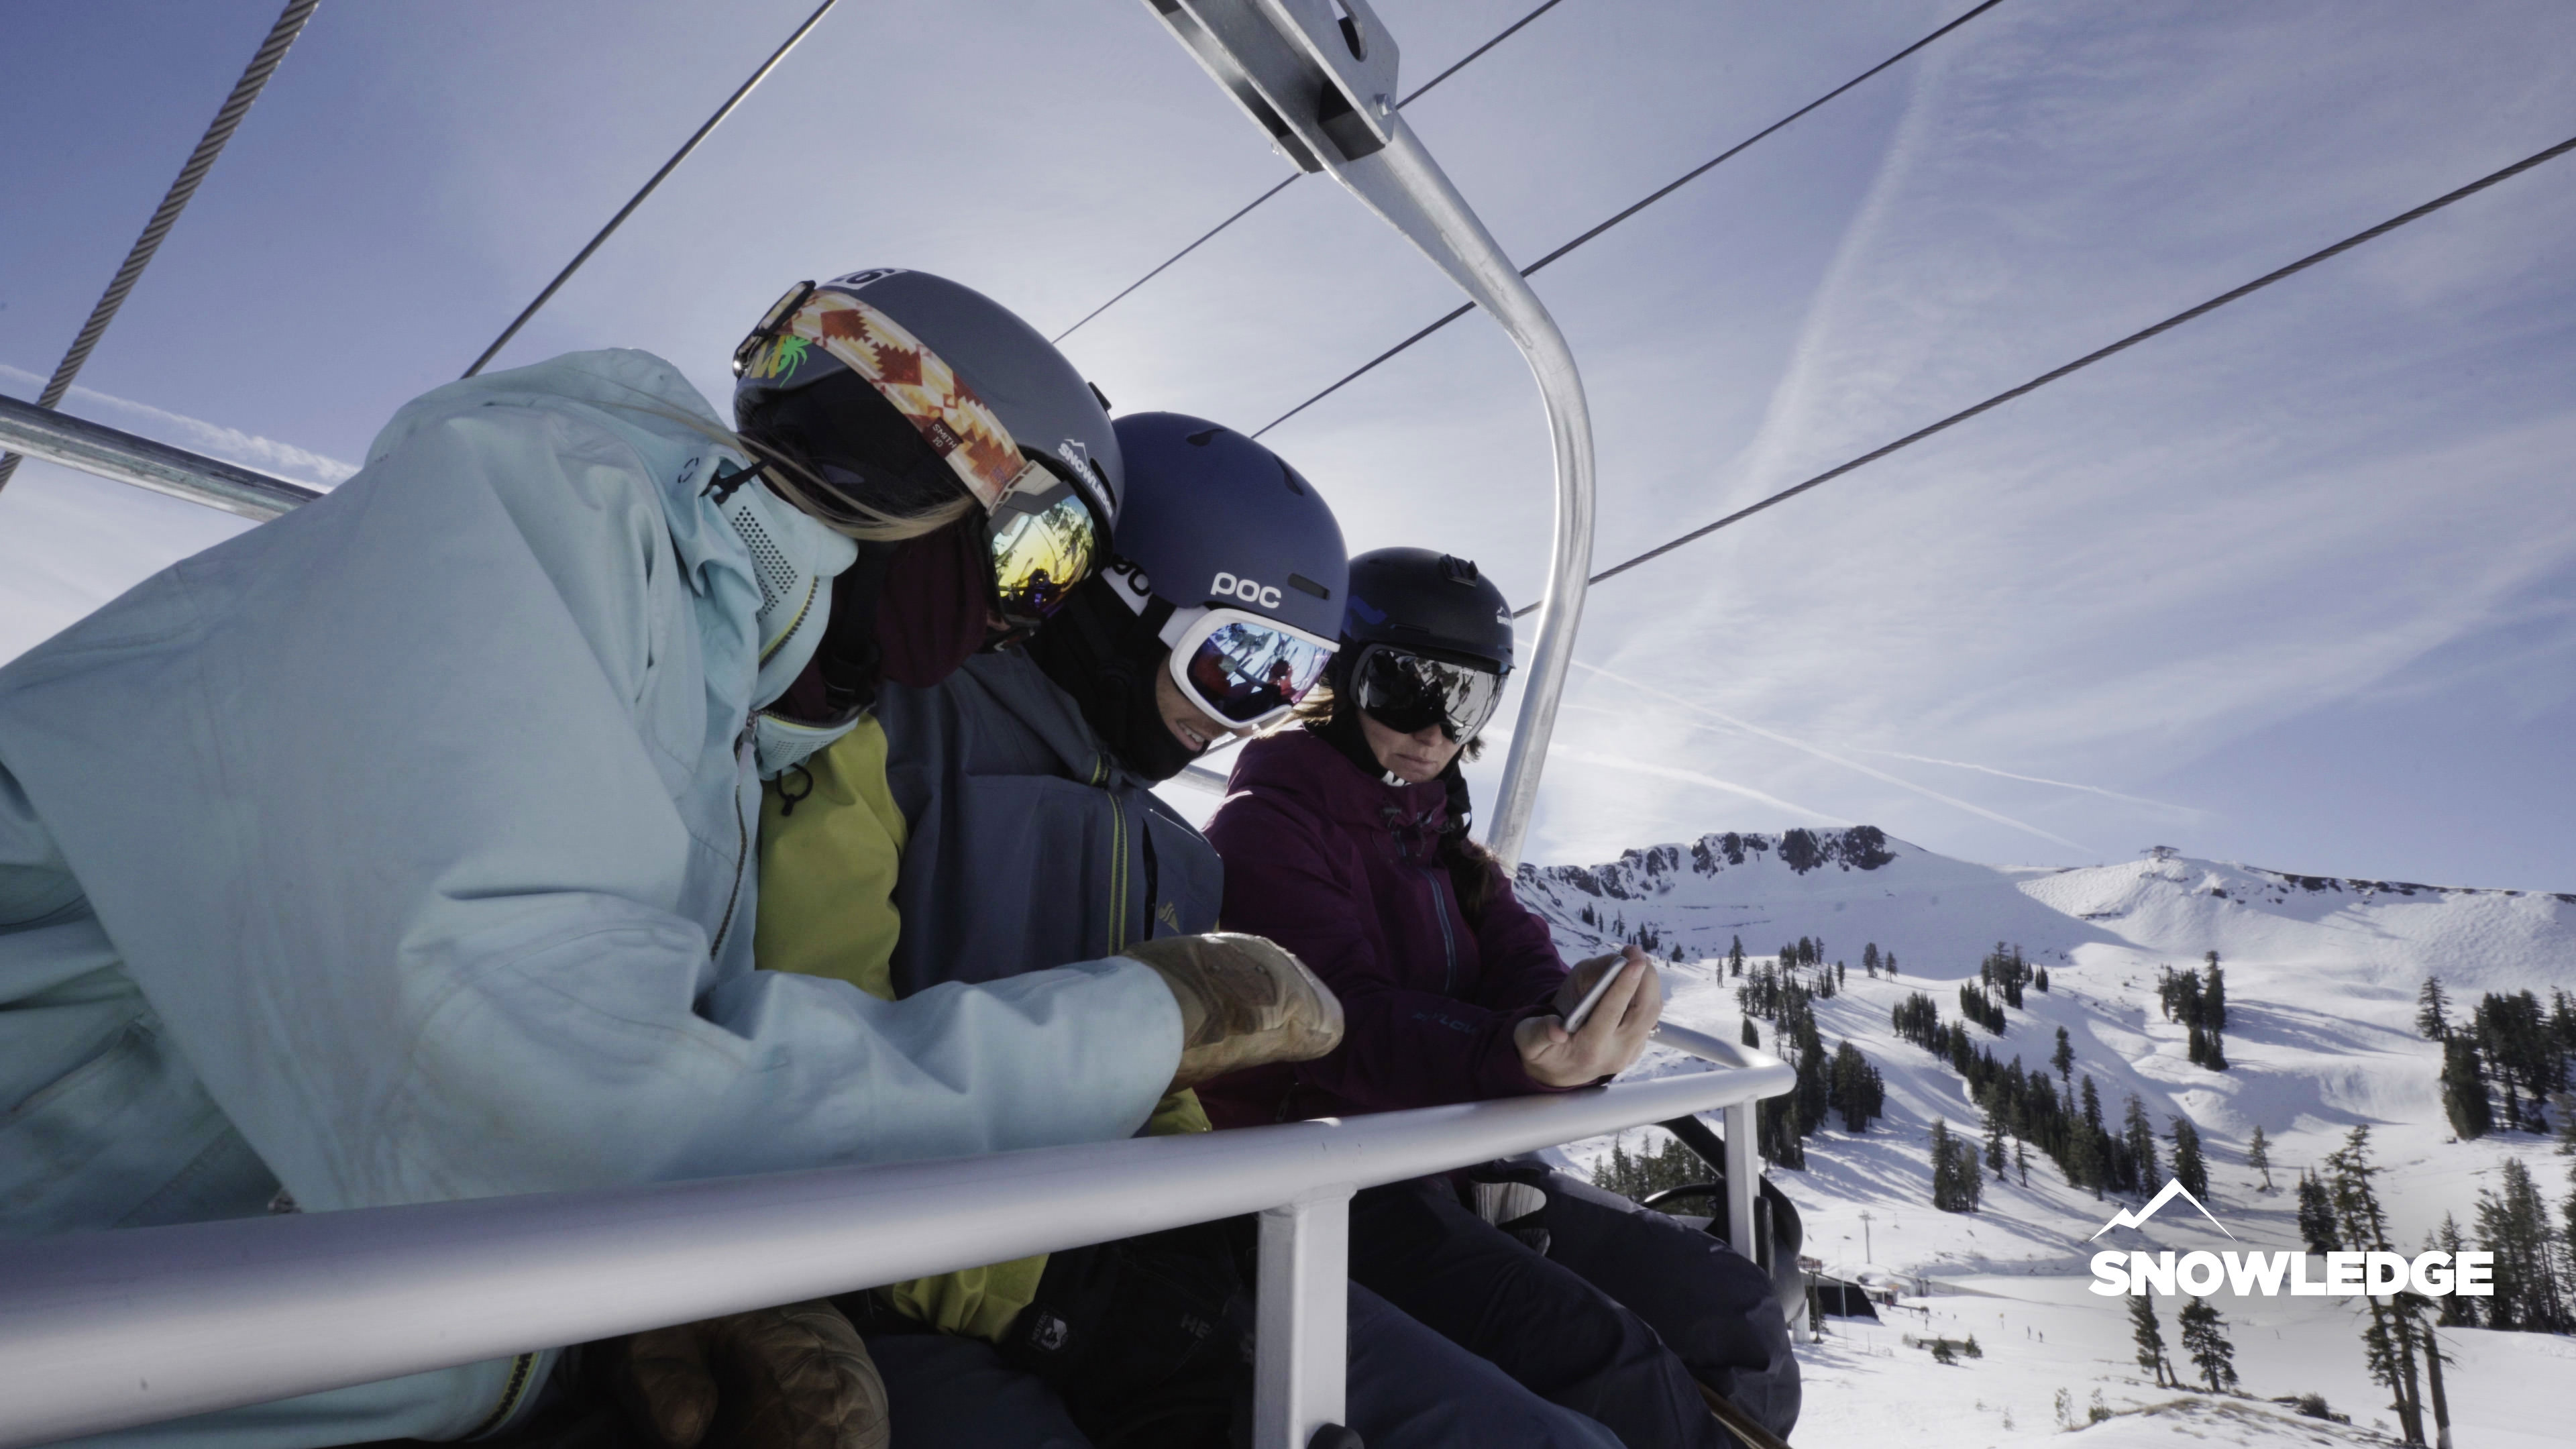 Skiers looking at a phone while on a lift